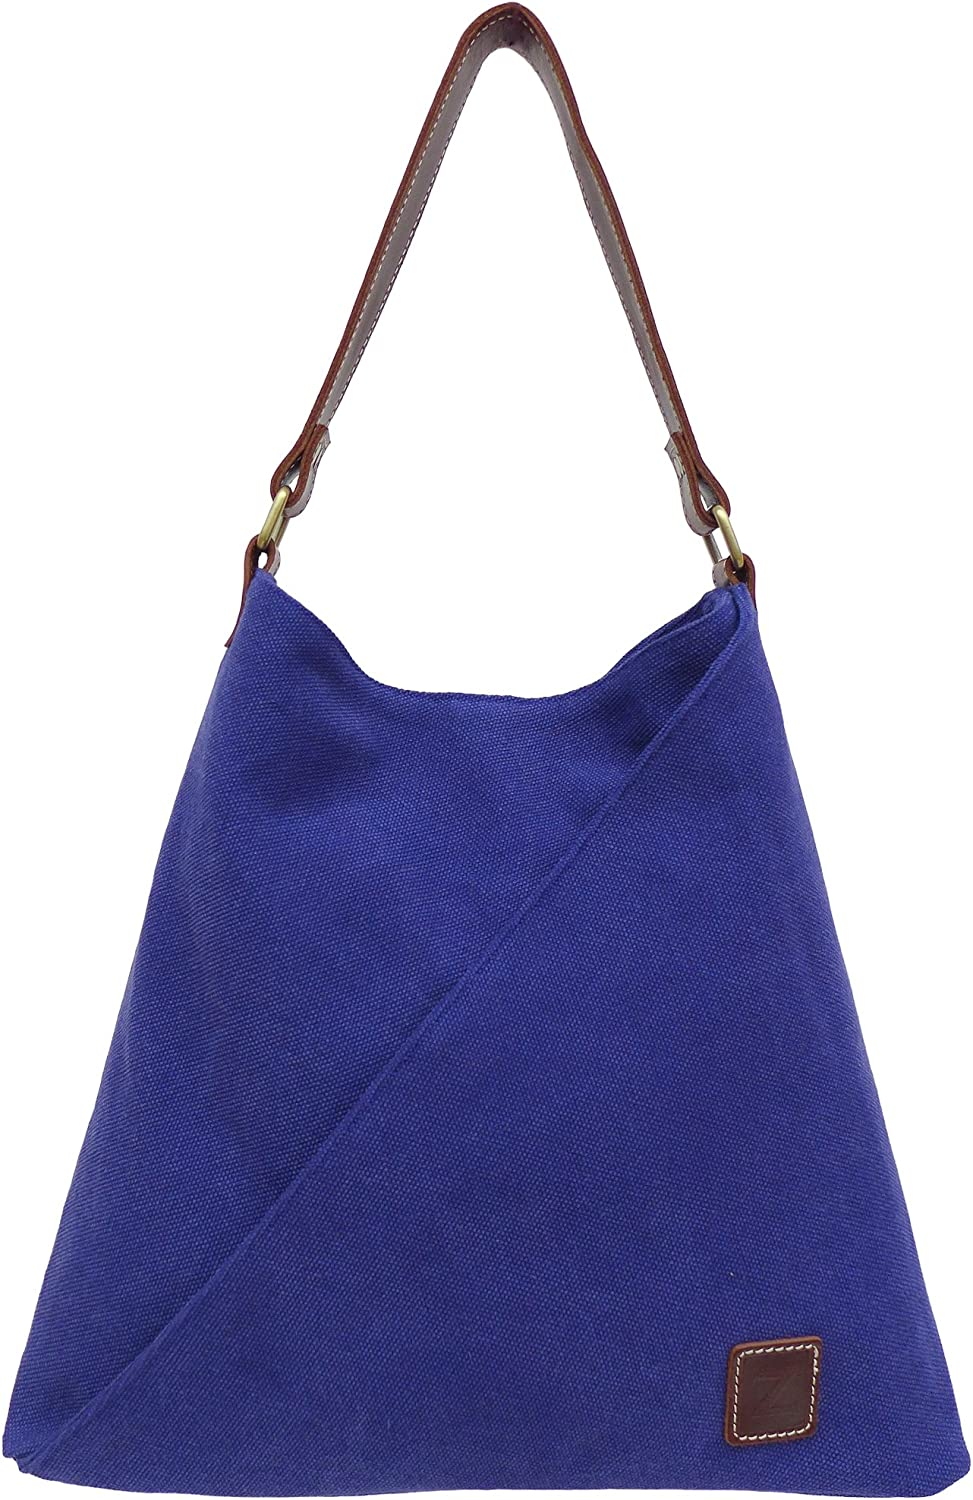 TATYZ Women Bright Color Organic Cotton and Genuine Leather Triangular Single Handle Summer Tote Bag